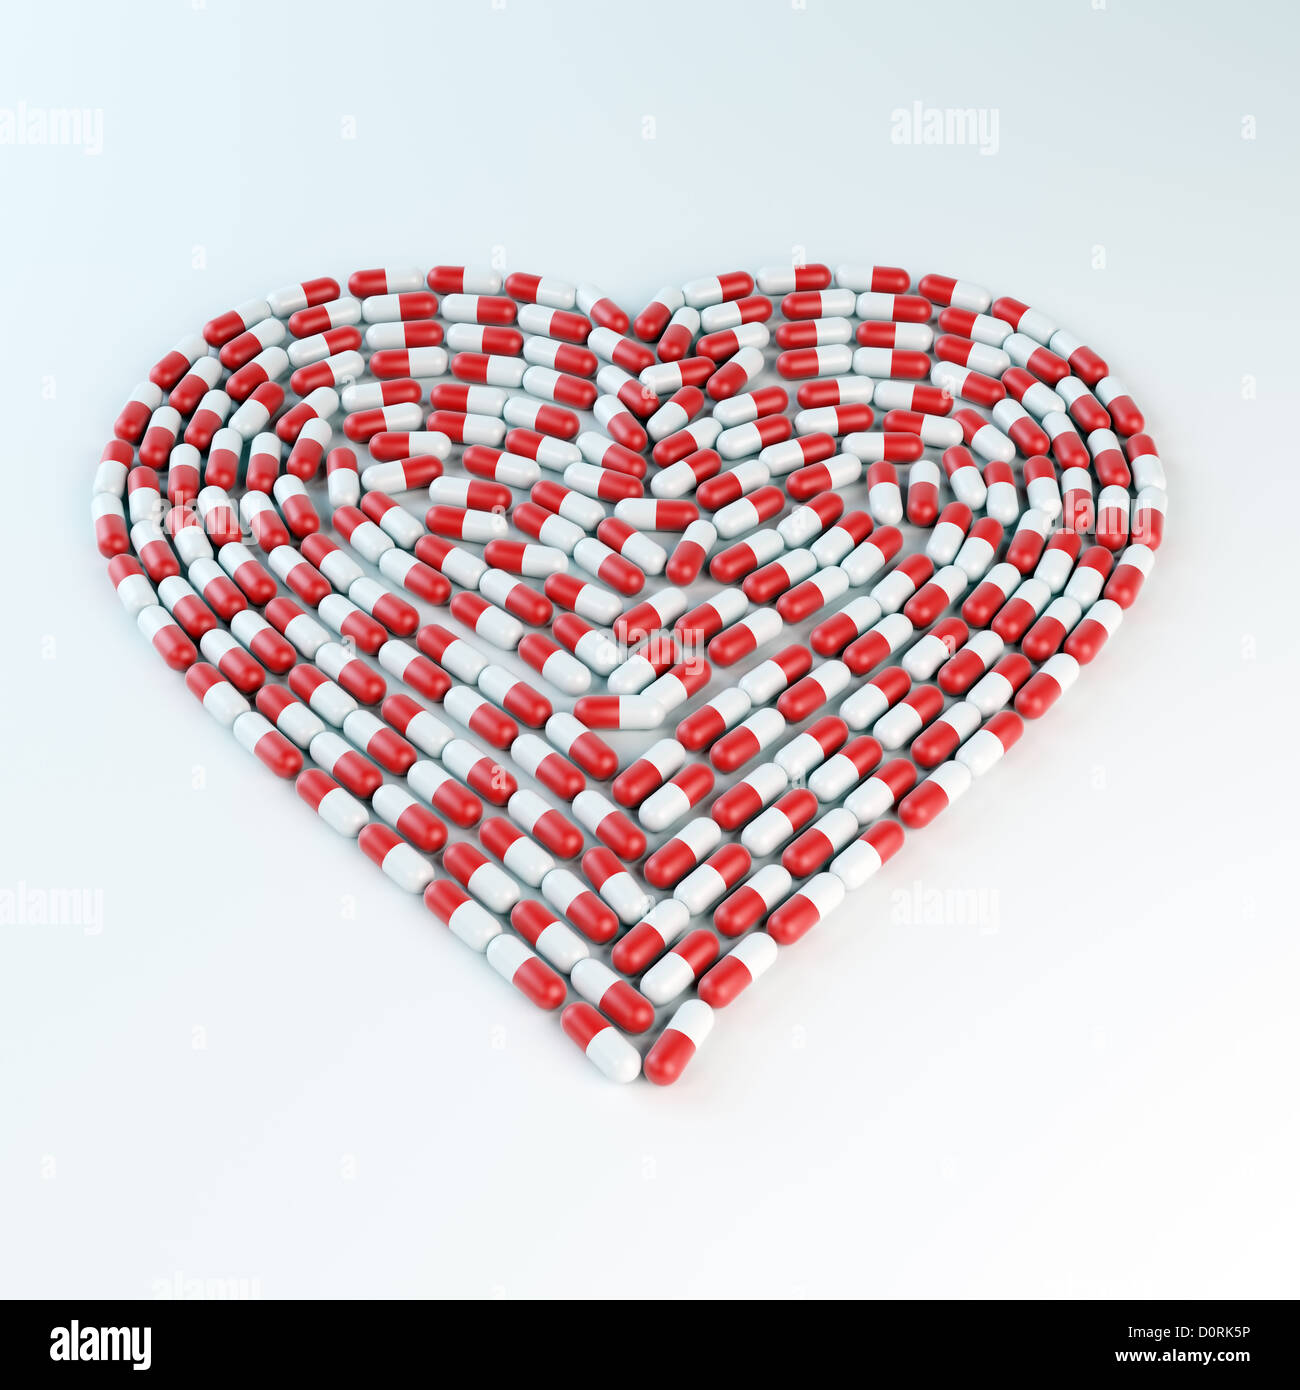 Red and white capsules forming a heart shap - Stock Image